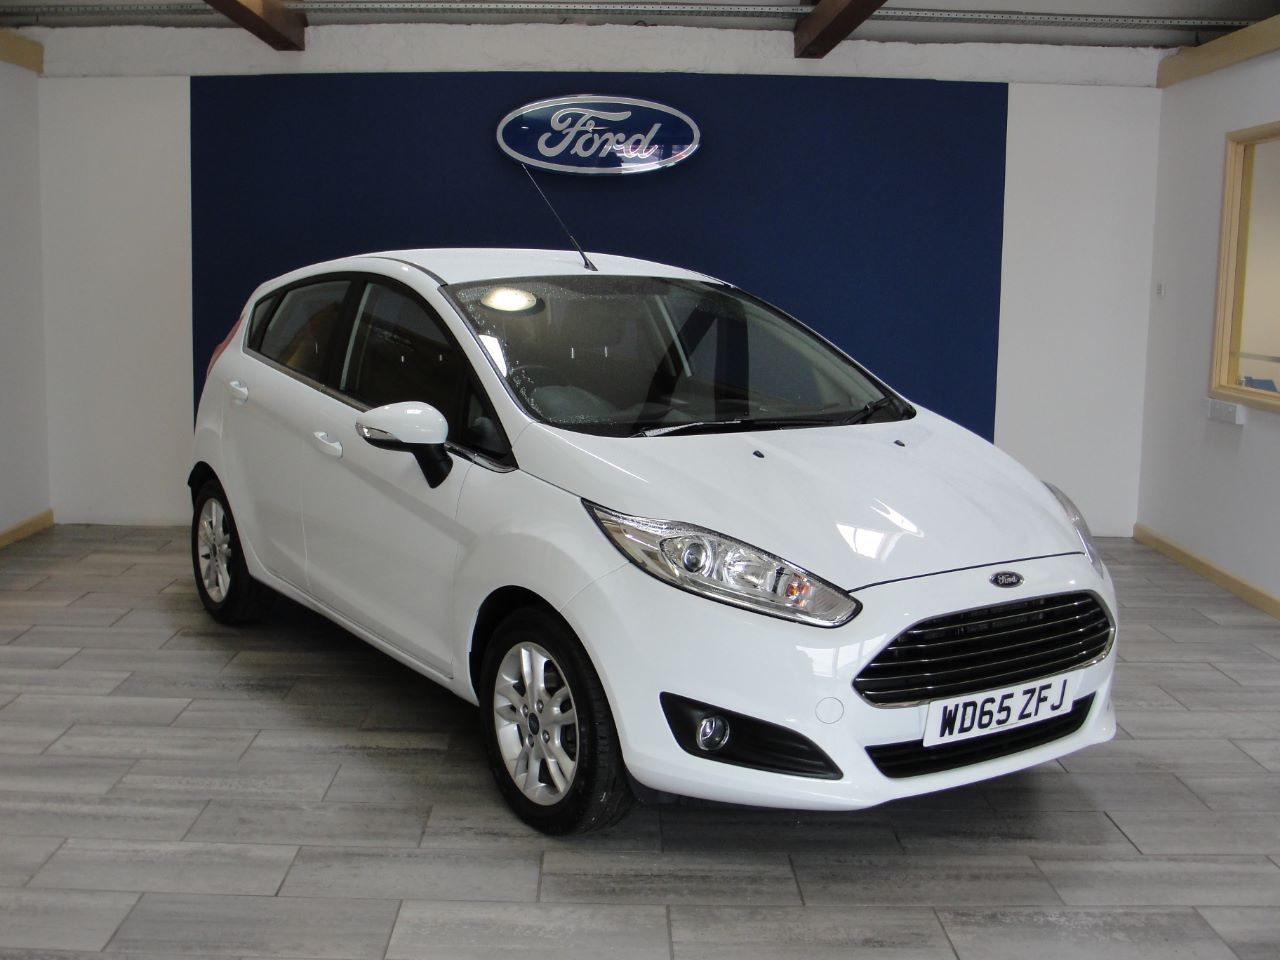 Ford Fiesta 1 0 Ecoboost Zetec 5dr Hatchback Petrol White With Images Used Ford Ford Ford Fiesta